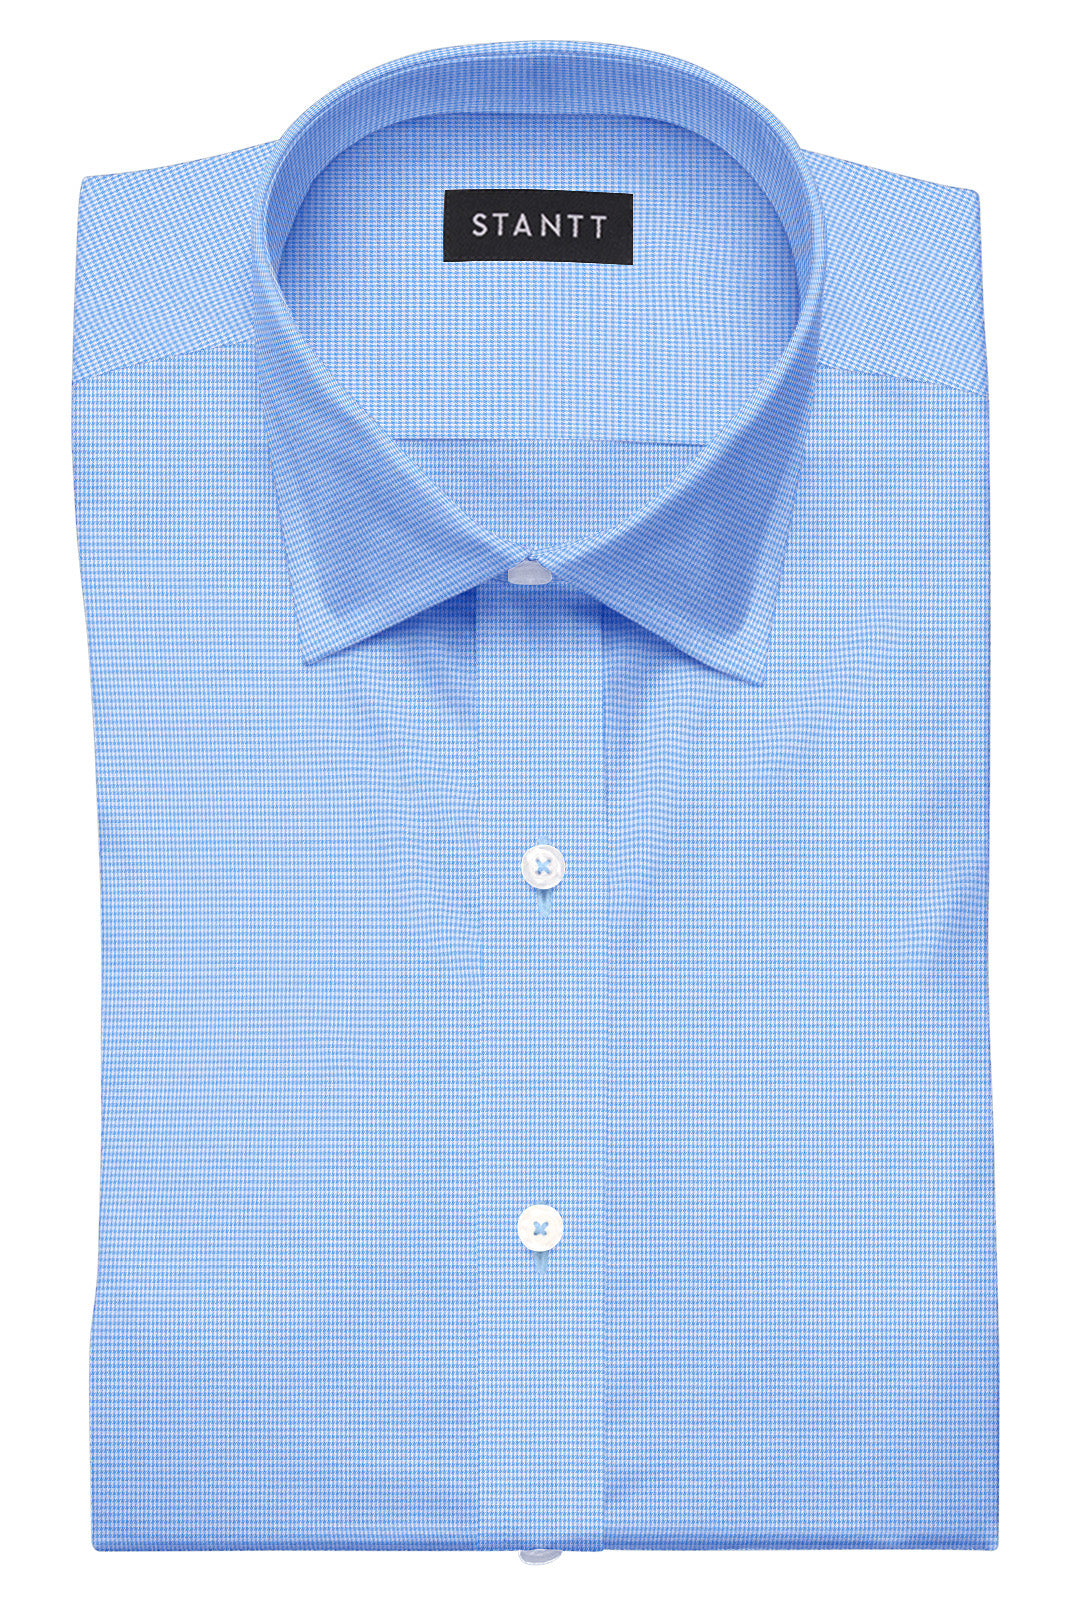 Wrinkle-Resistant French Blue Houndstooth: Cutaway Collar, Barrel Cuff